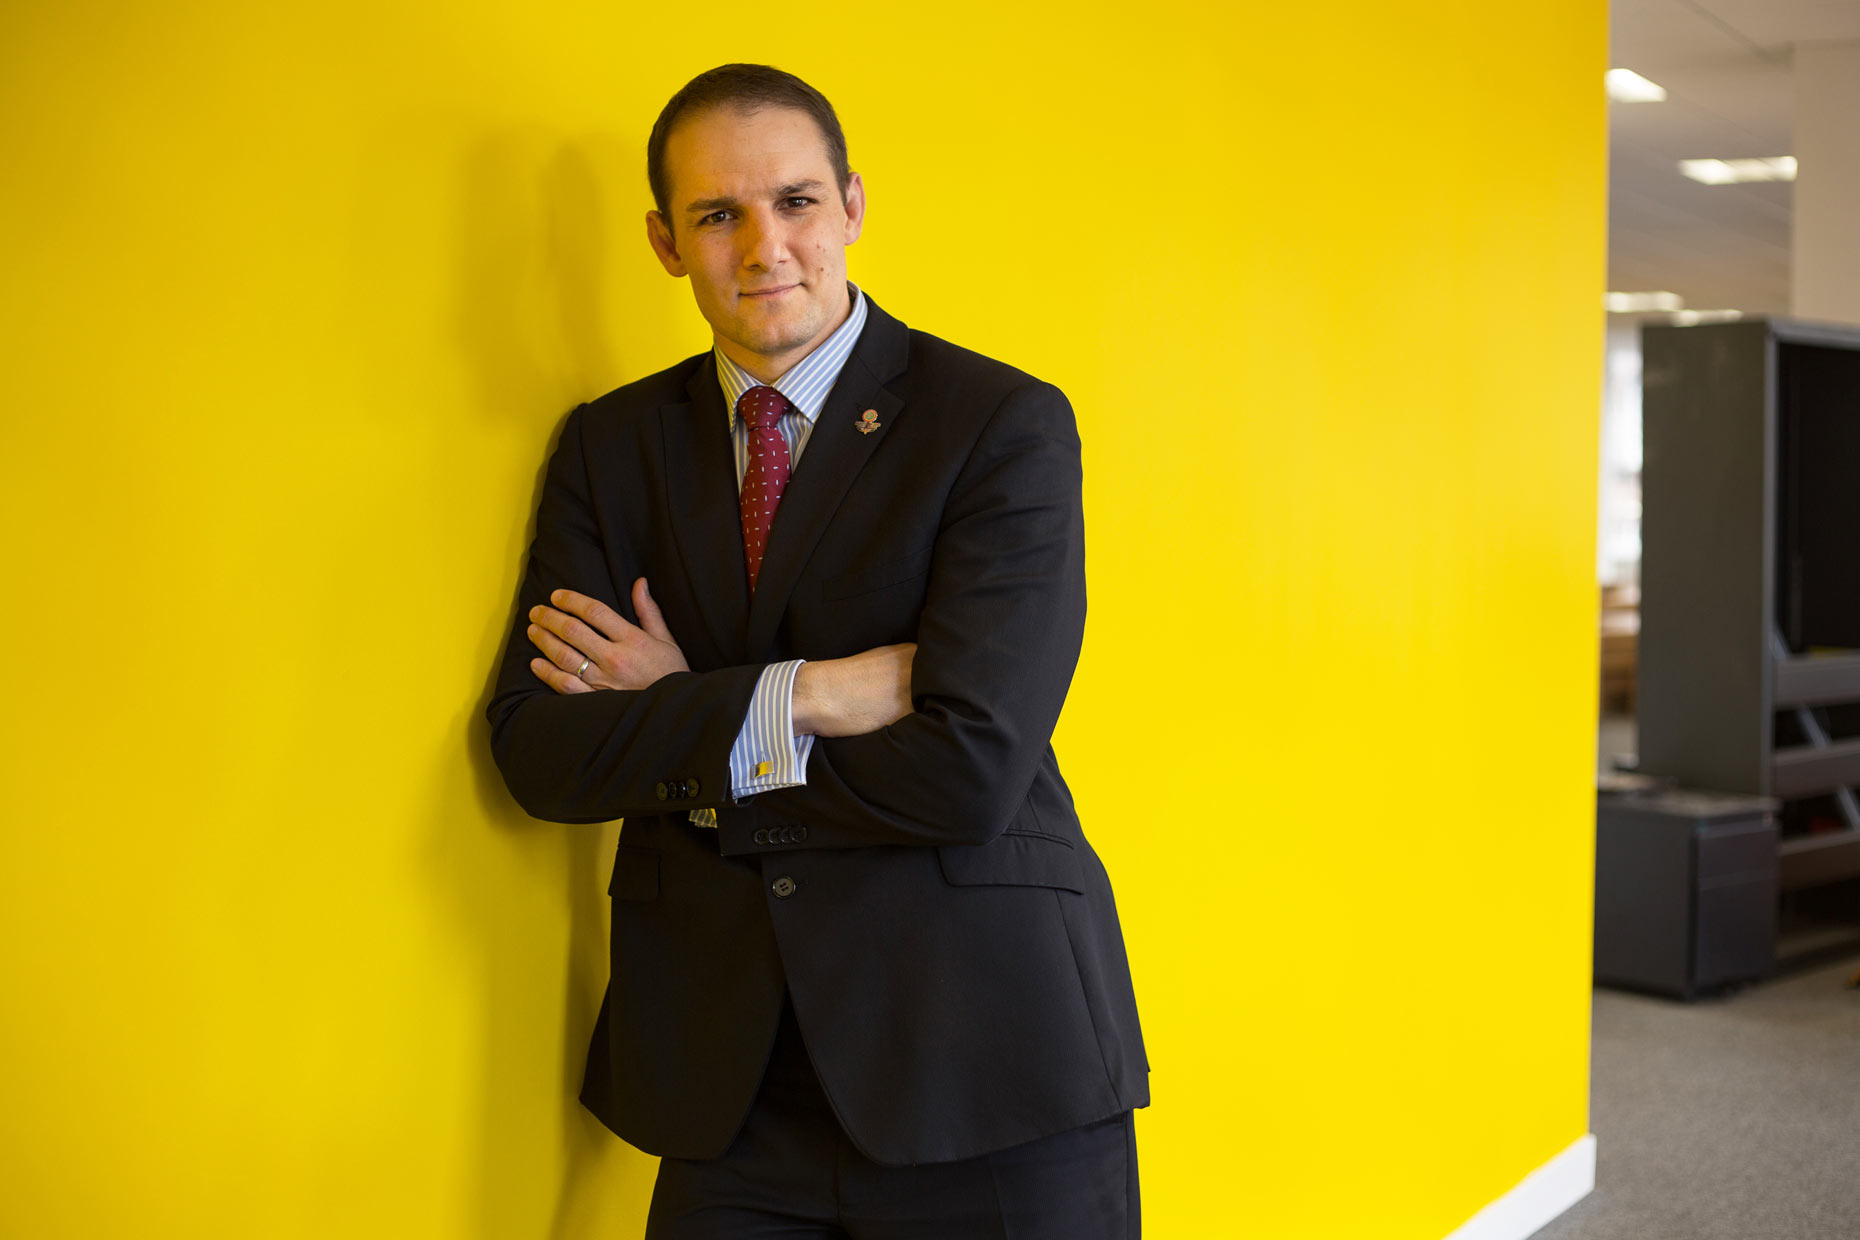 David Grevemberg in Scotland, portrait by photographer J. Sutton-Hibbert